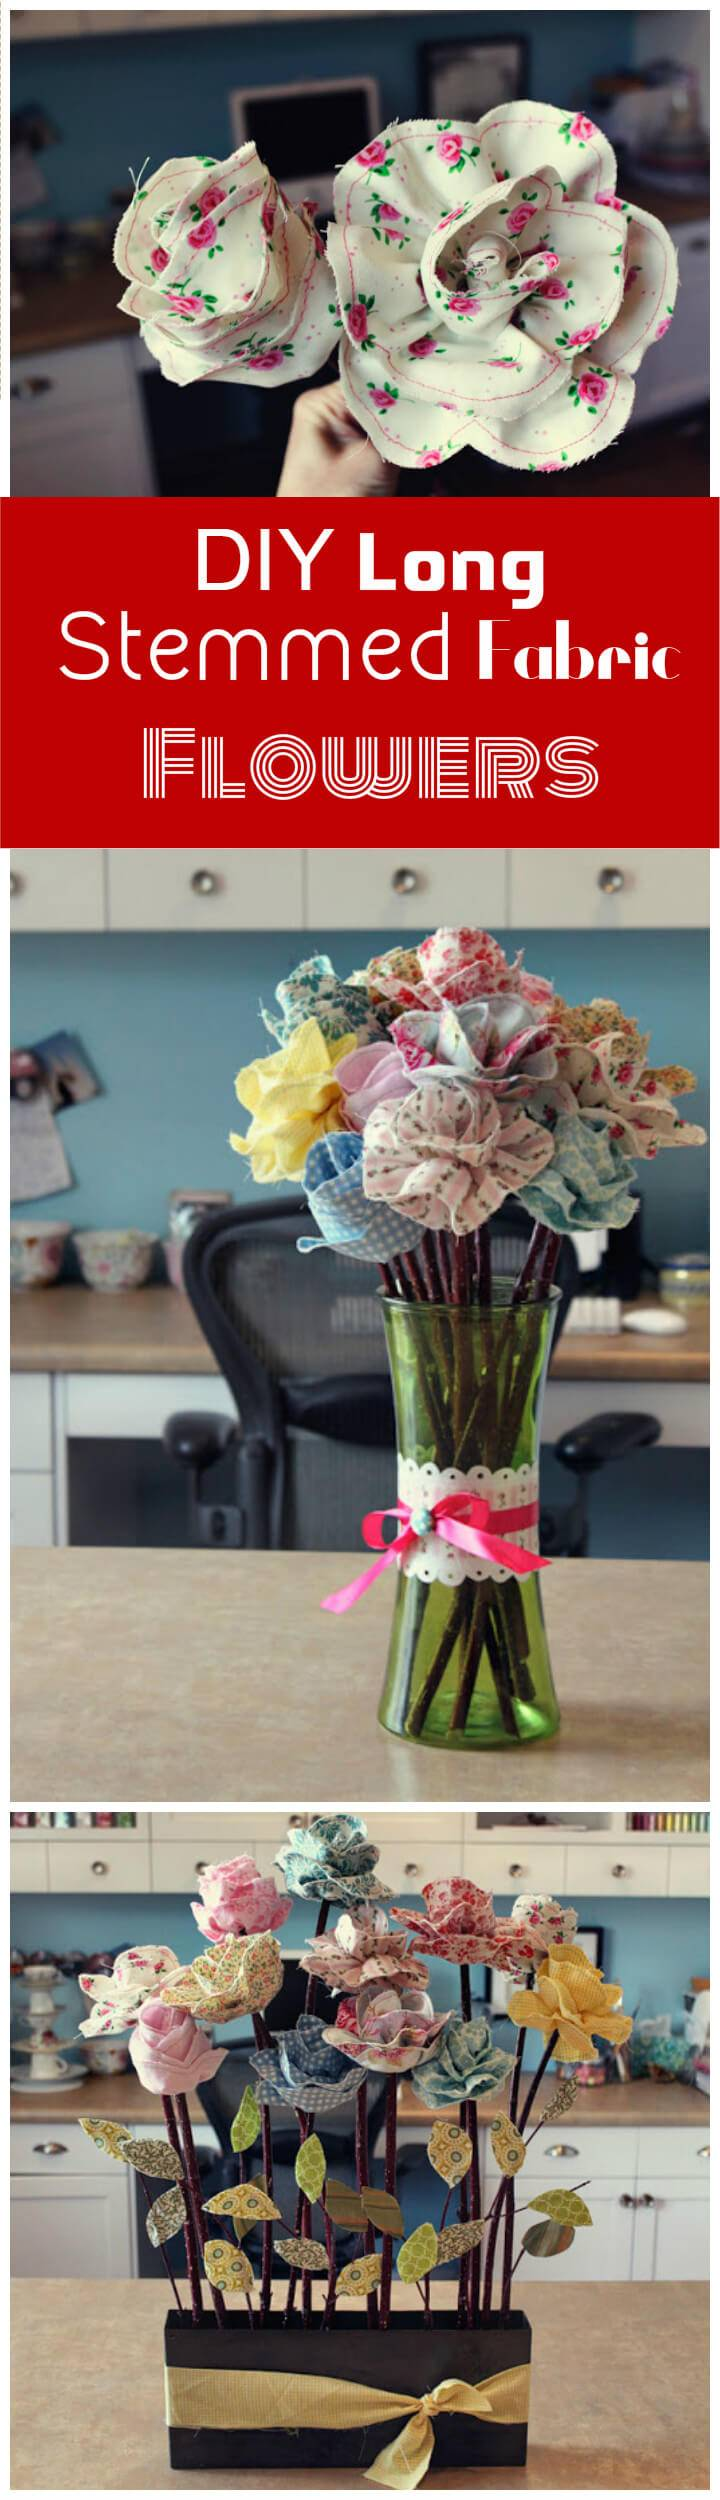 DIY long stemmed fabric flowers